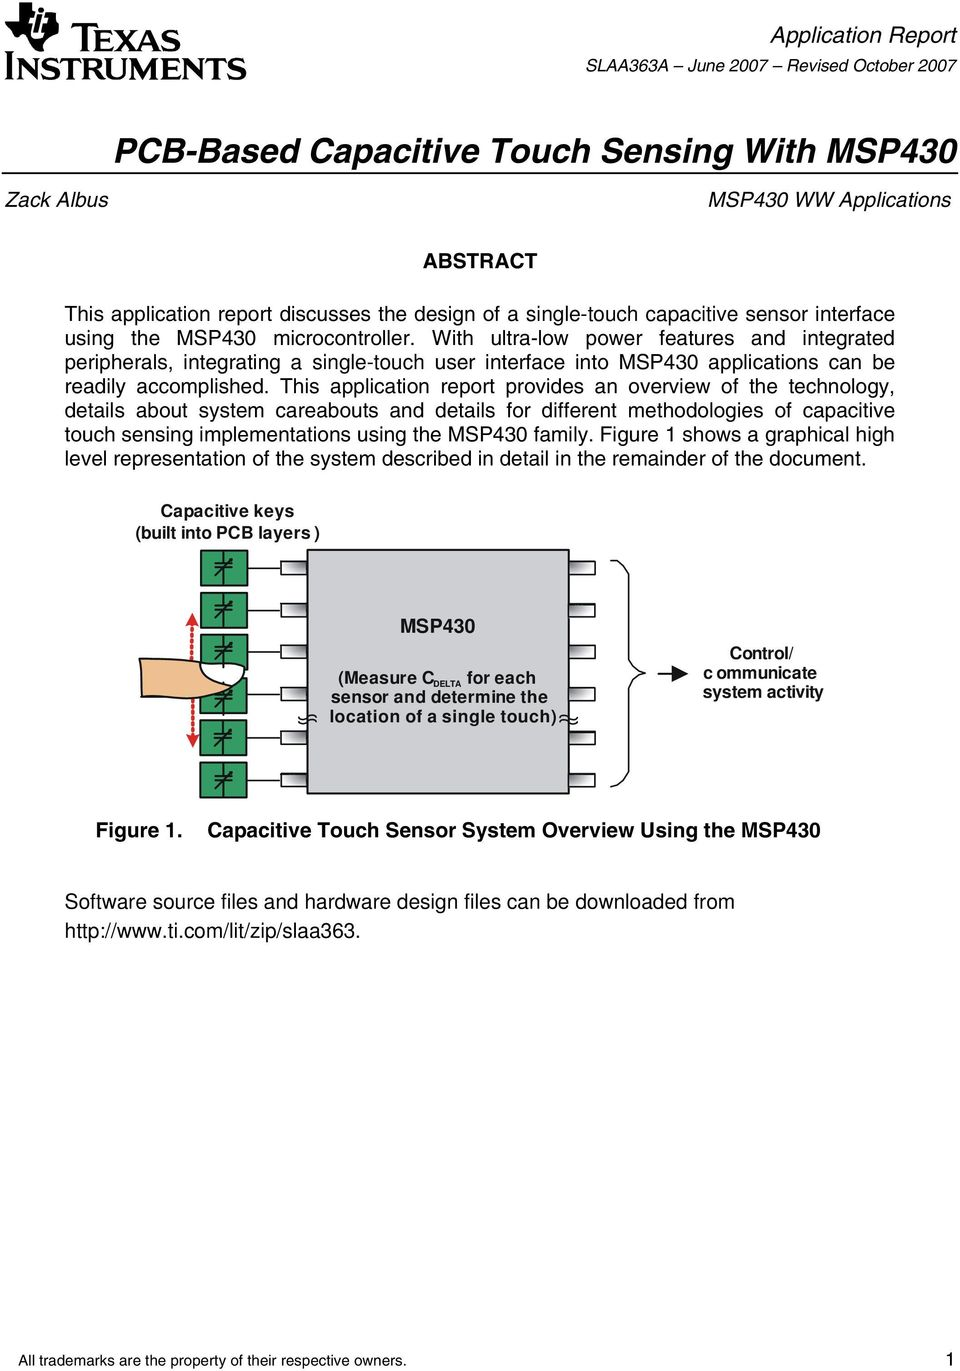 Pcb Based Capacitive Touch Sensing With Msp430 Pdf Low Side Switch Revisionb Ultra Power Features And Integrated Peripherals Integrating A Single User